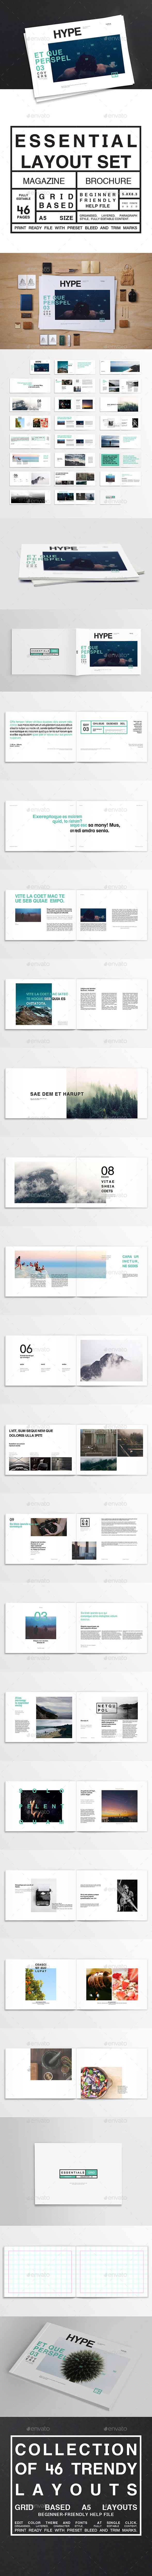 GraphicRiver 46 Essential Trendy Layout Set Magazine Brochure 10978821